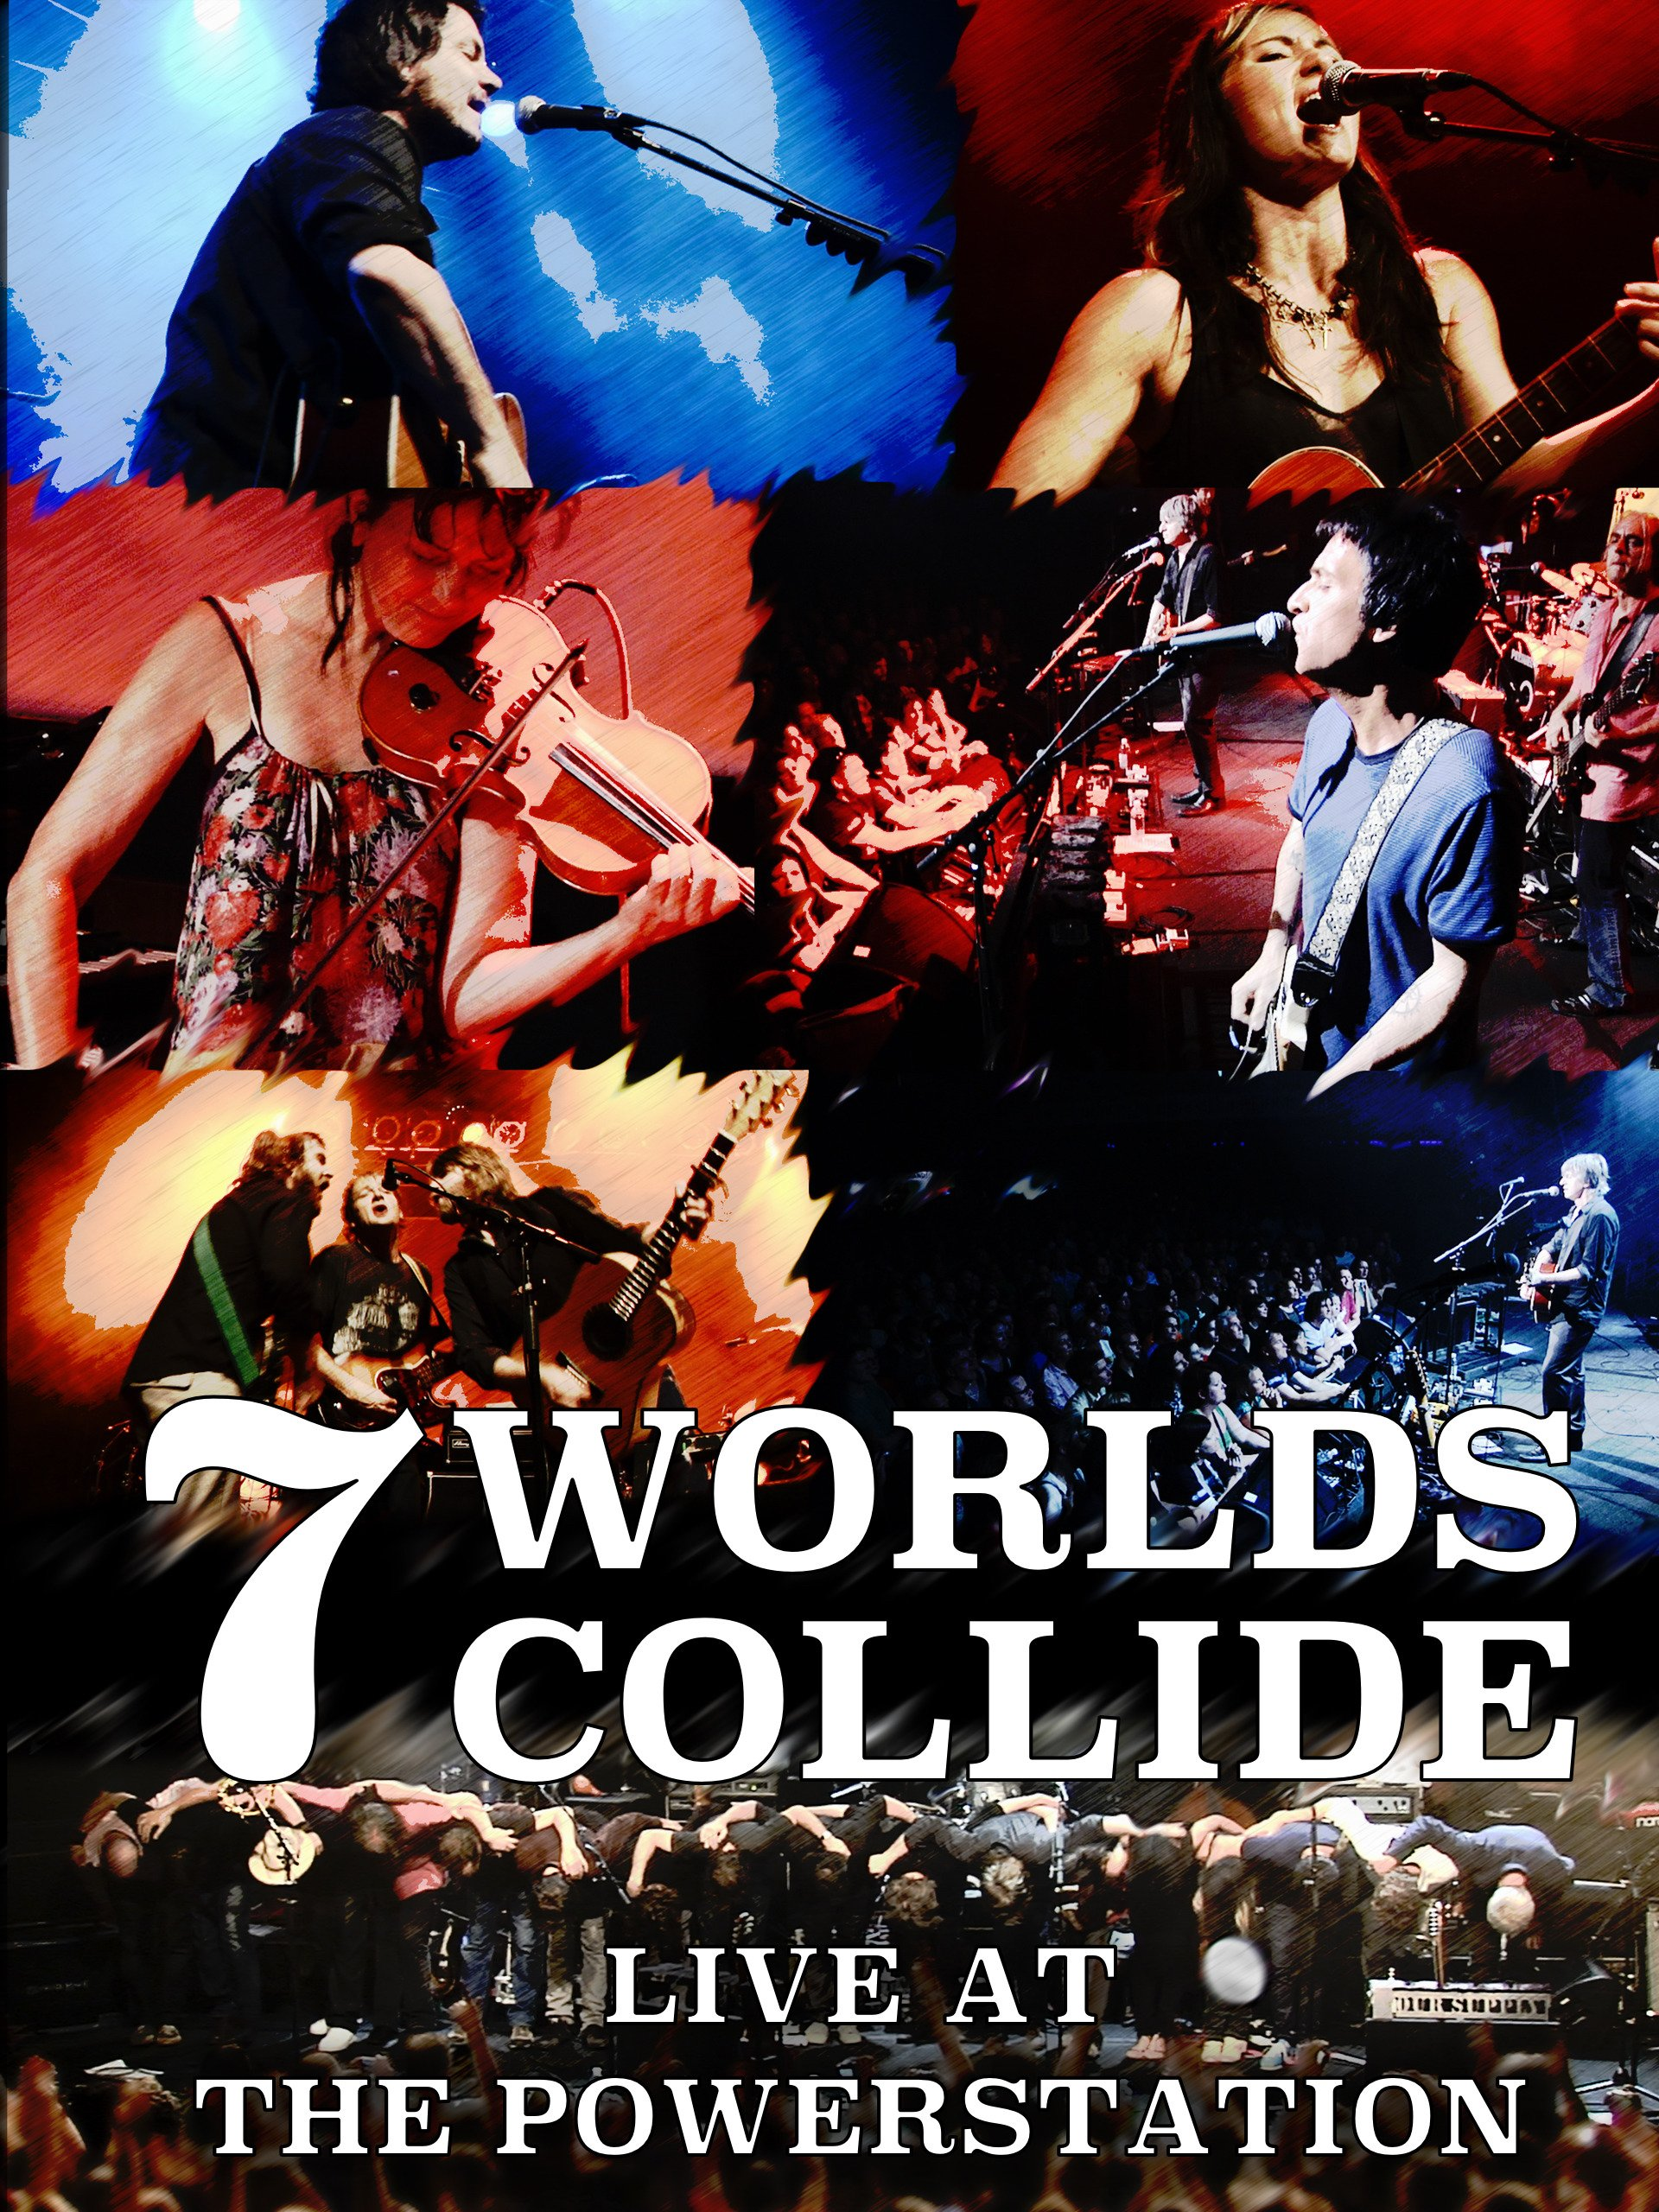 7 Worlds Collide - Live At The Powerstation